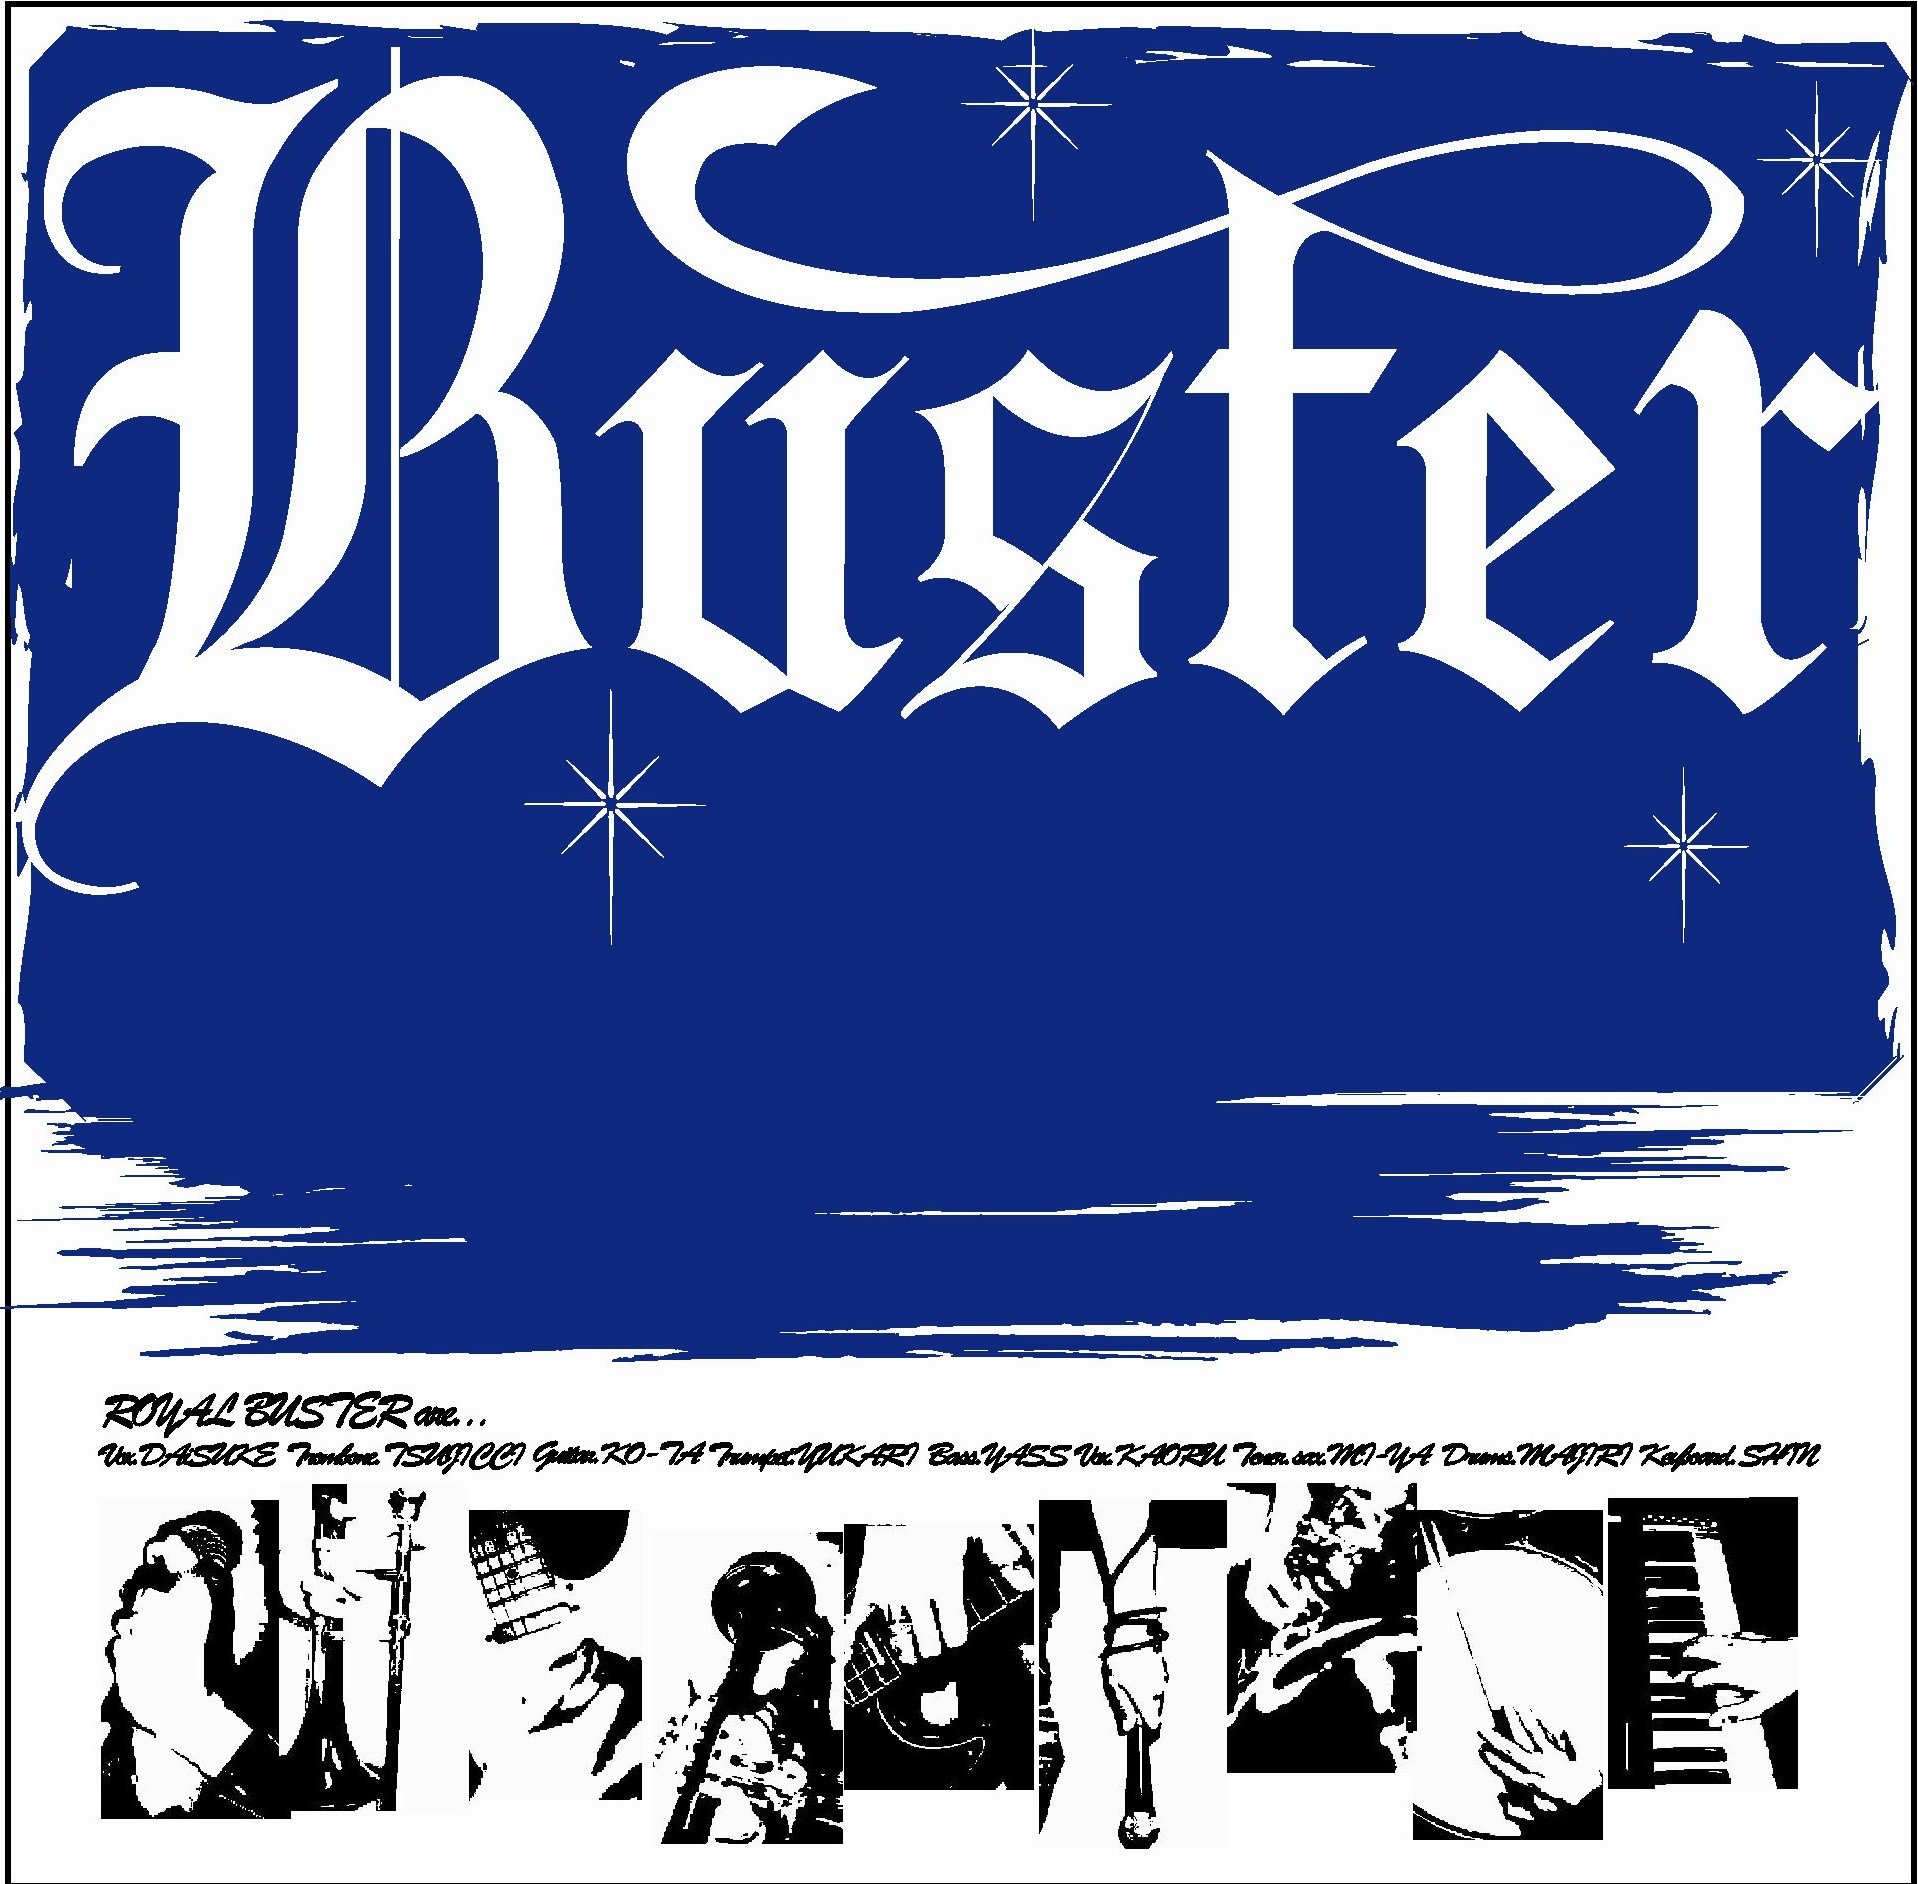 ROYAL BUSTER